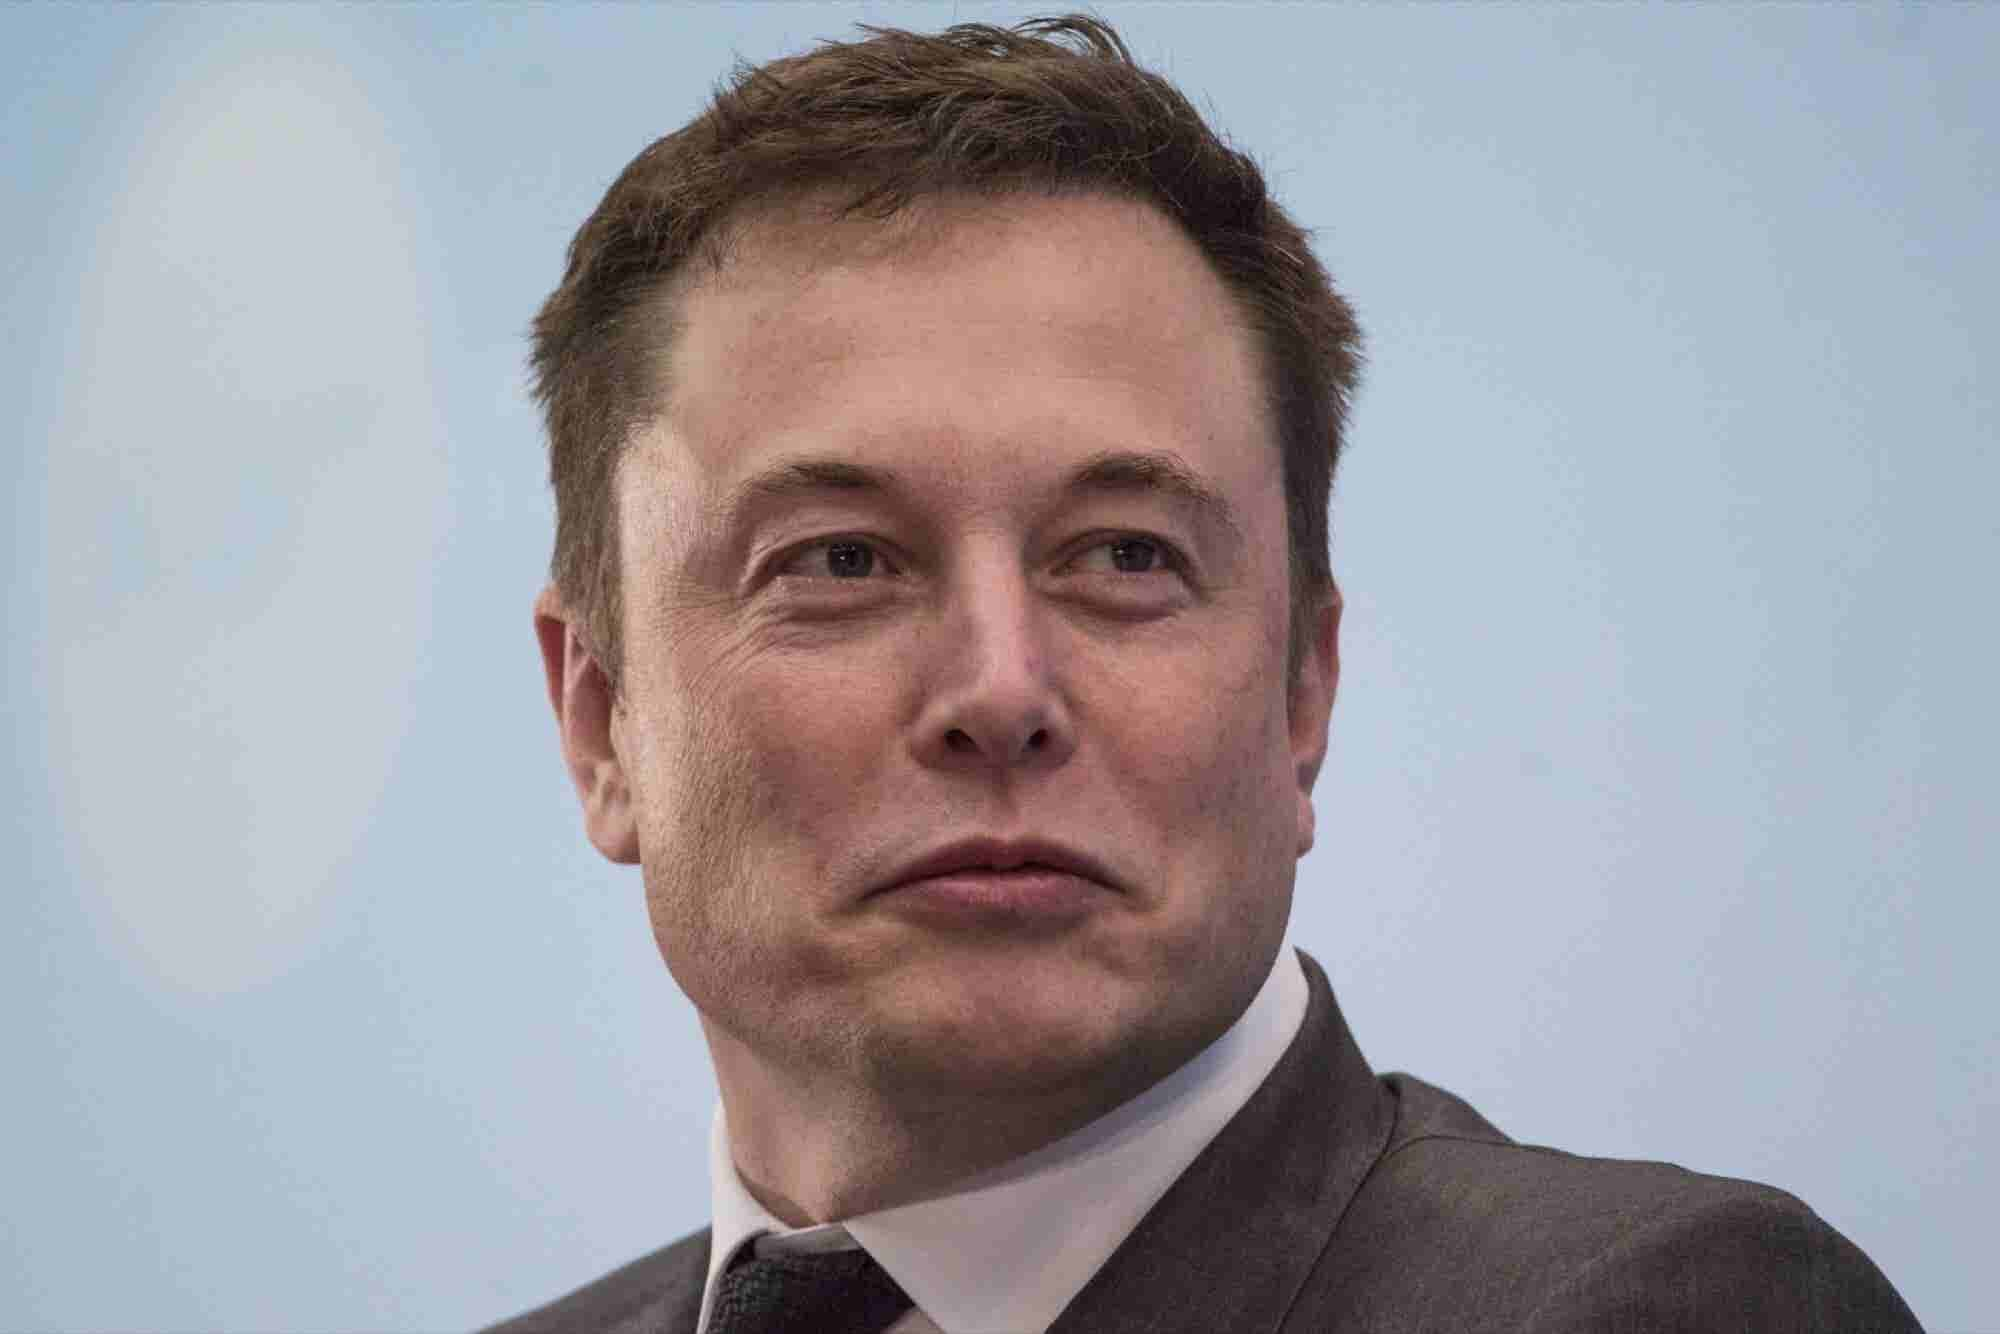 5 Out of This World Songs That Inspire Elon Musk